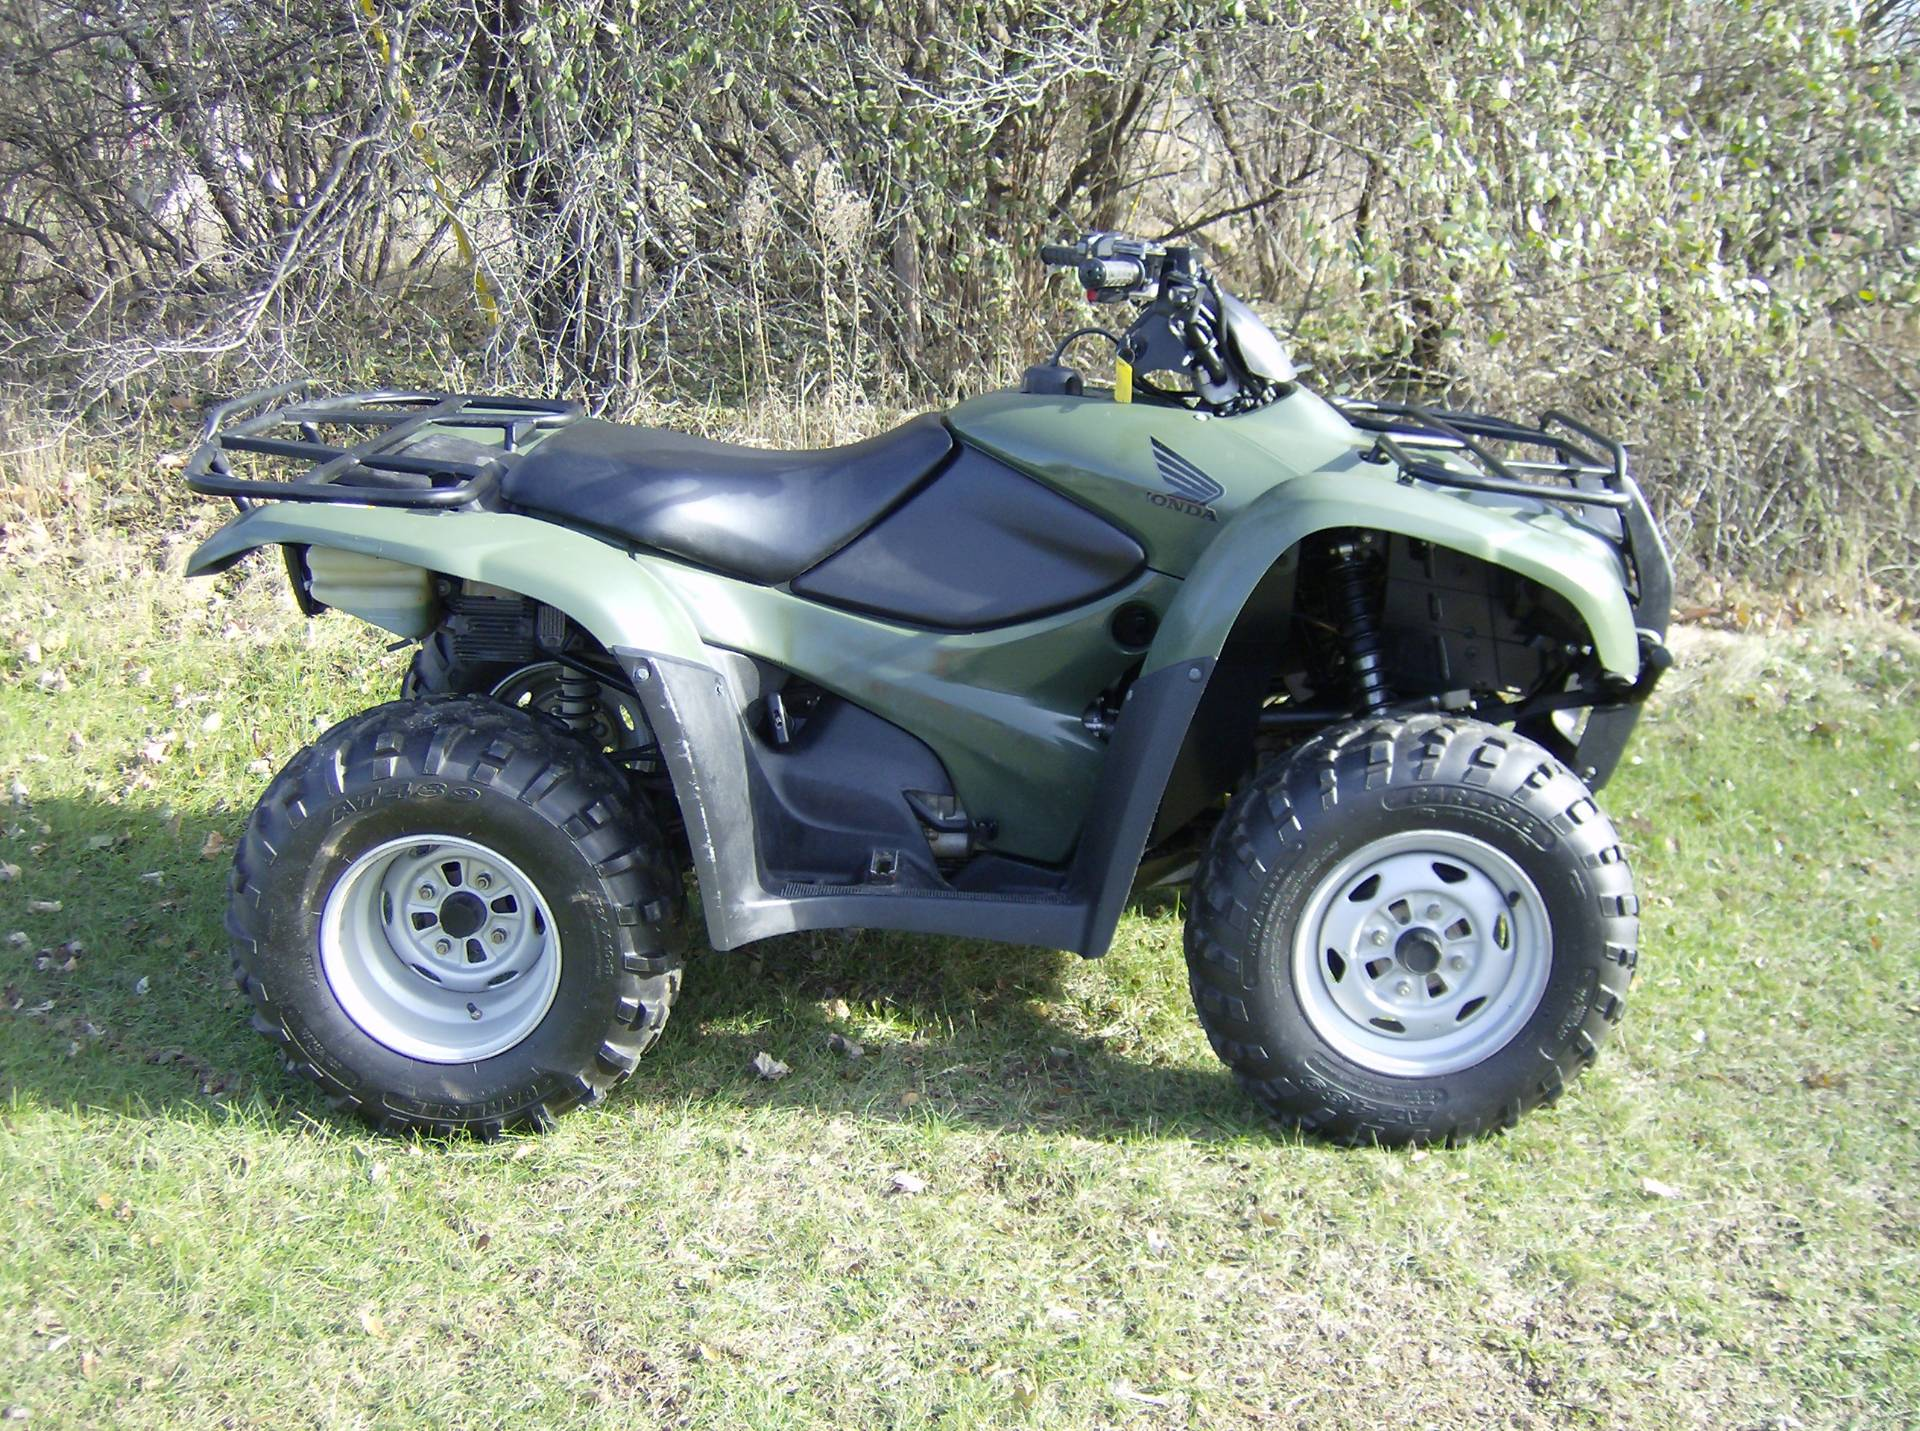 2010 honda fourtrax rancher 4x4 es for sale mukwonago wi for Honda 420 rancher for sale